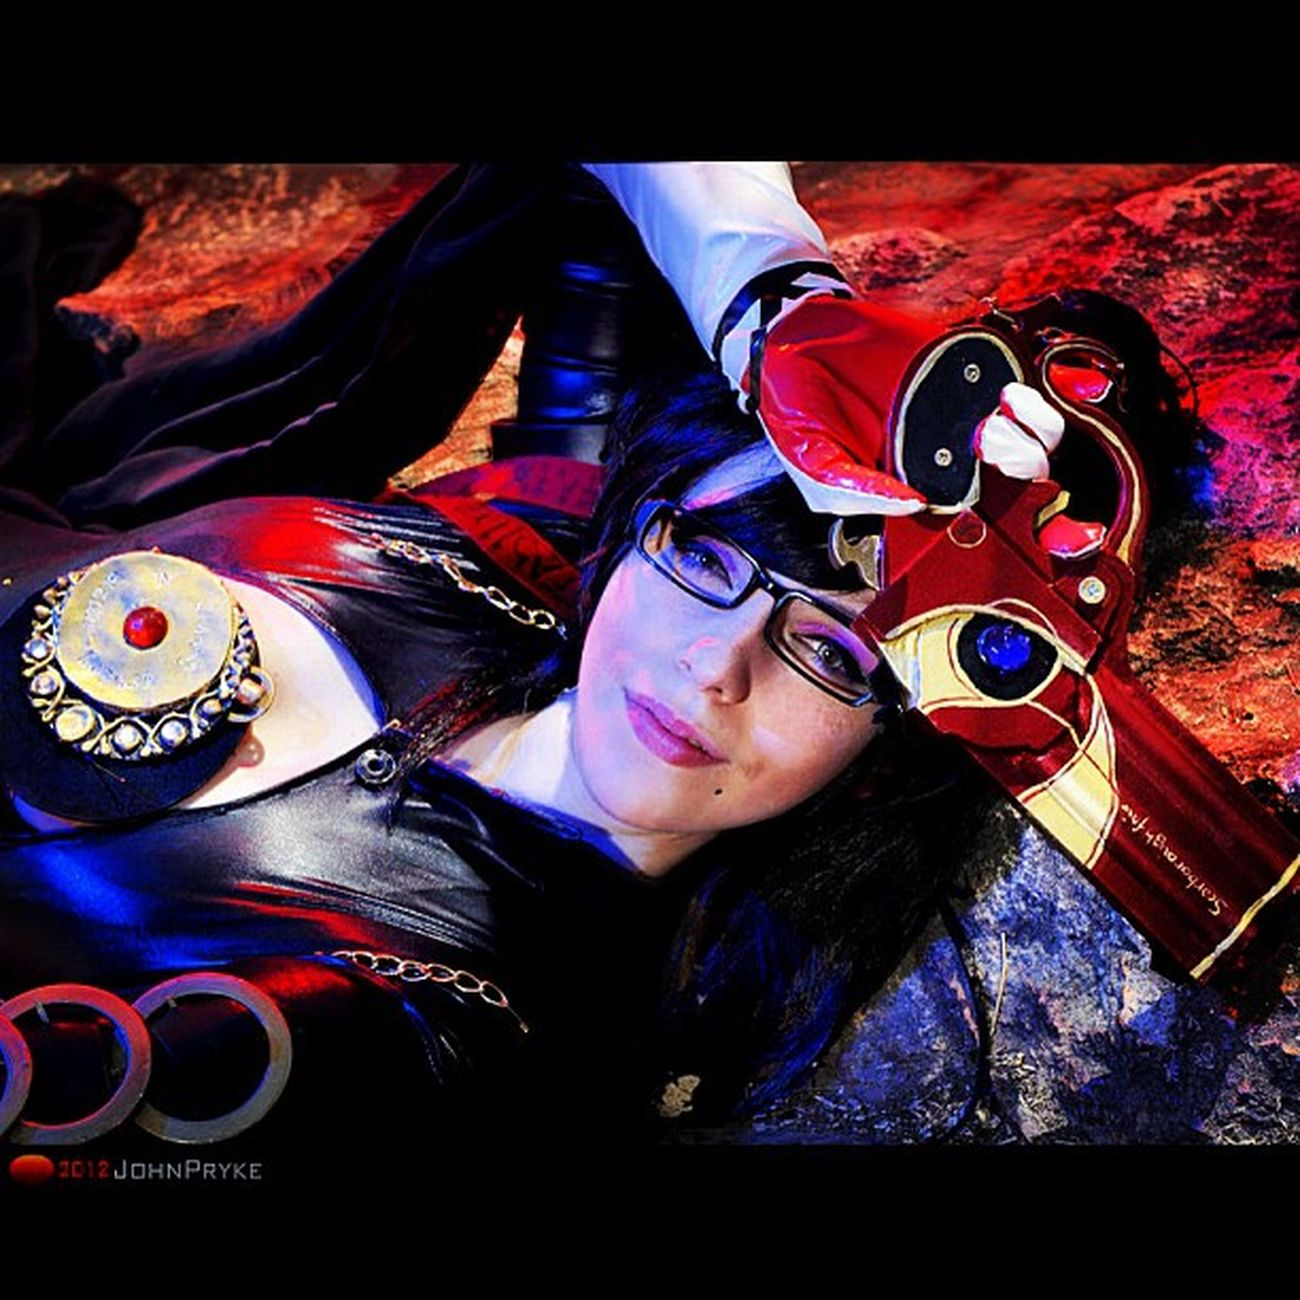 Bayonetta Cosplay Photoshoot with Katyuska Moonfox Strobist